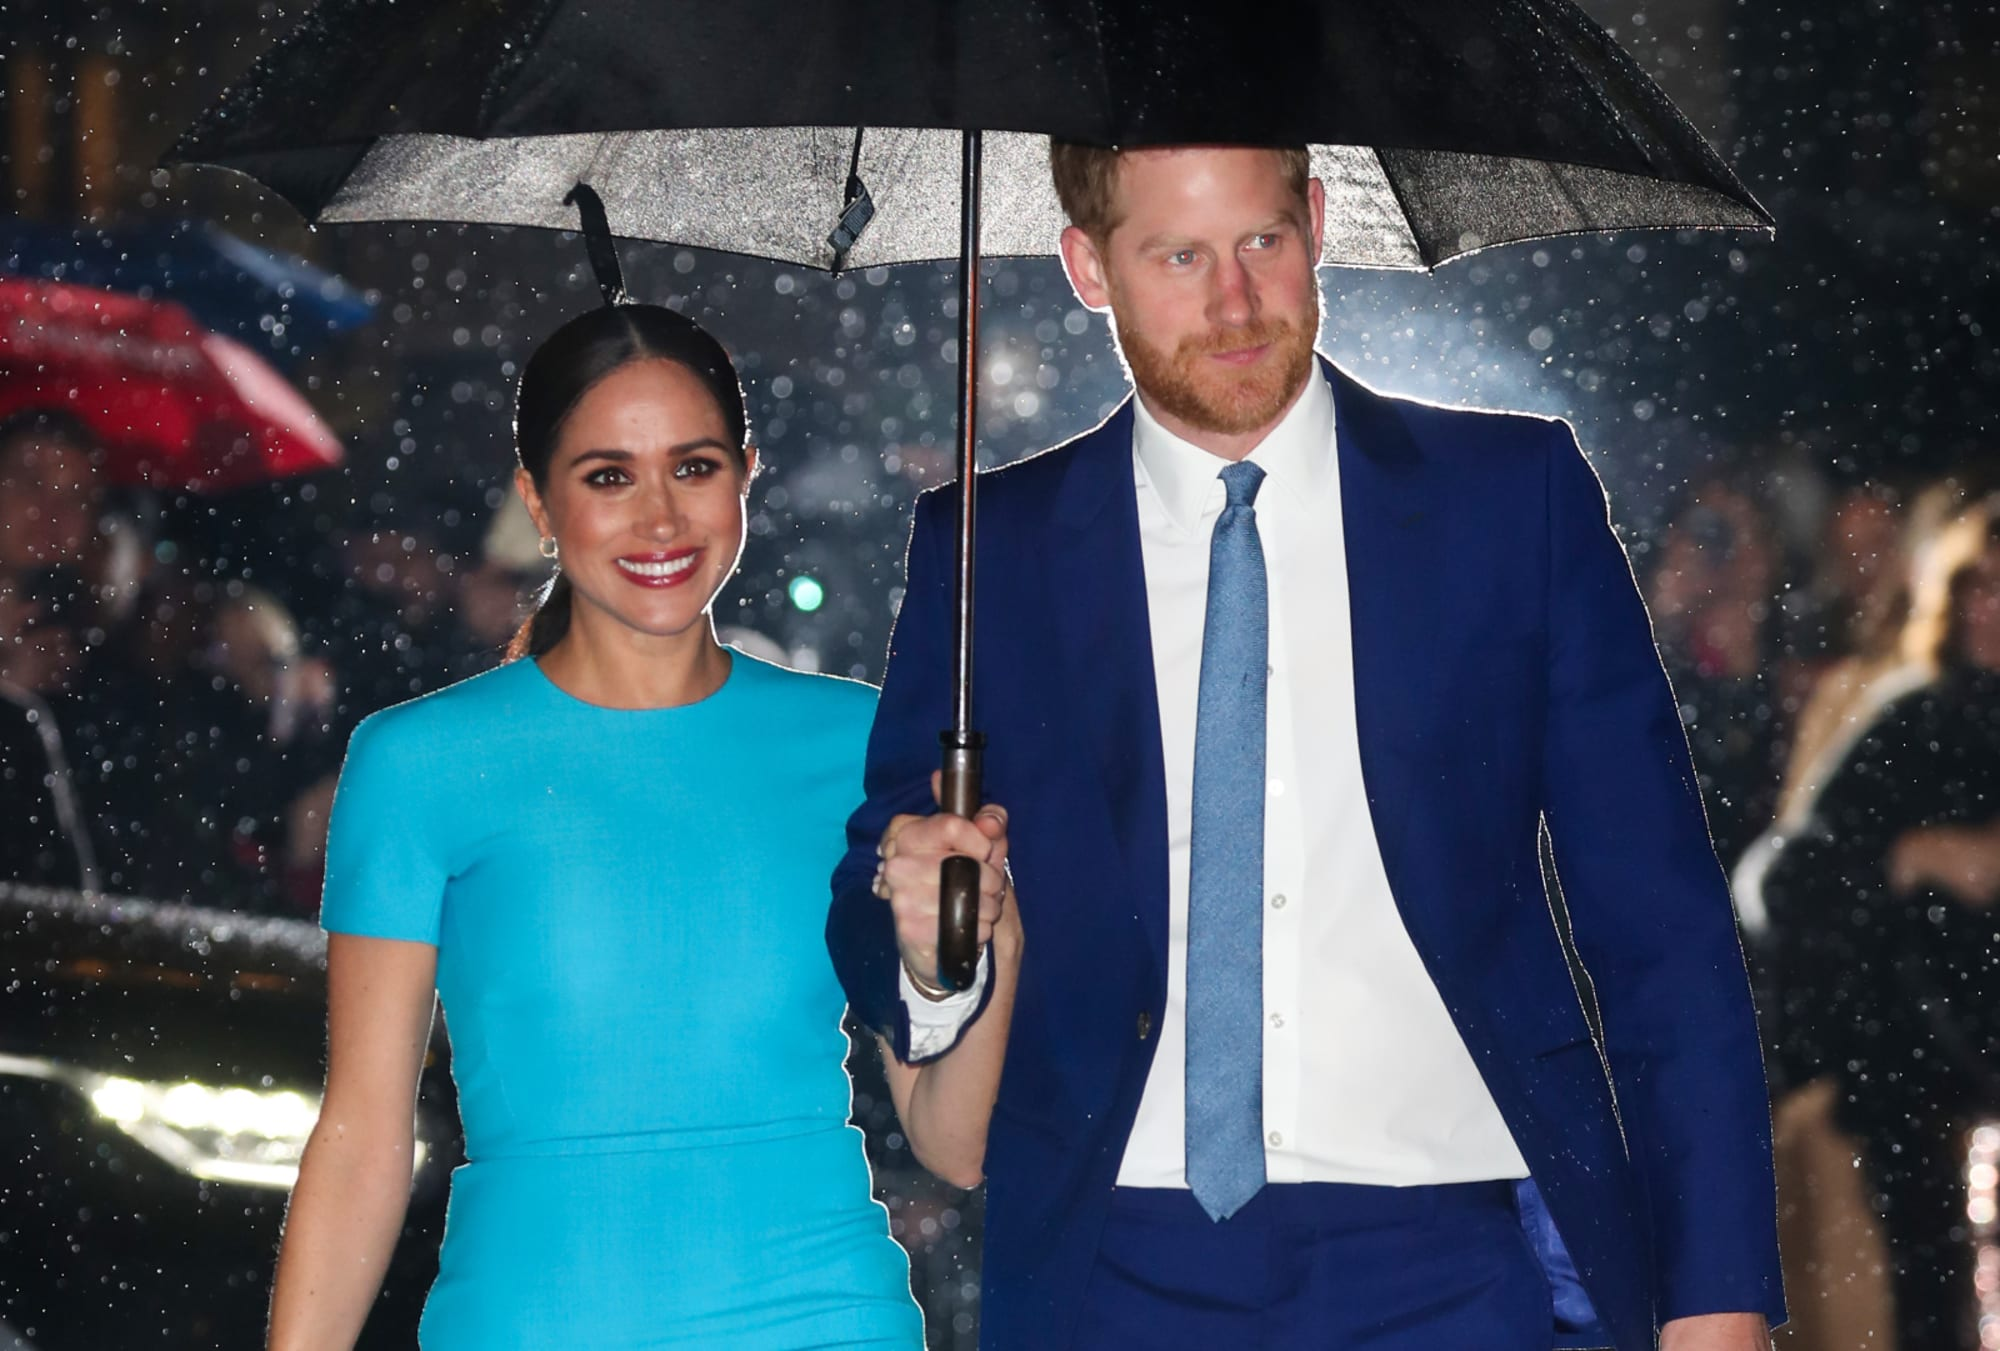 Meghan Markle on Dancing with the Stars: DWTS judge hopeful she'll compete